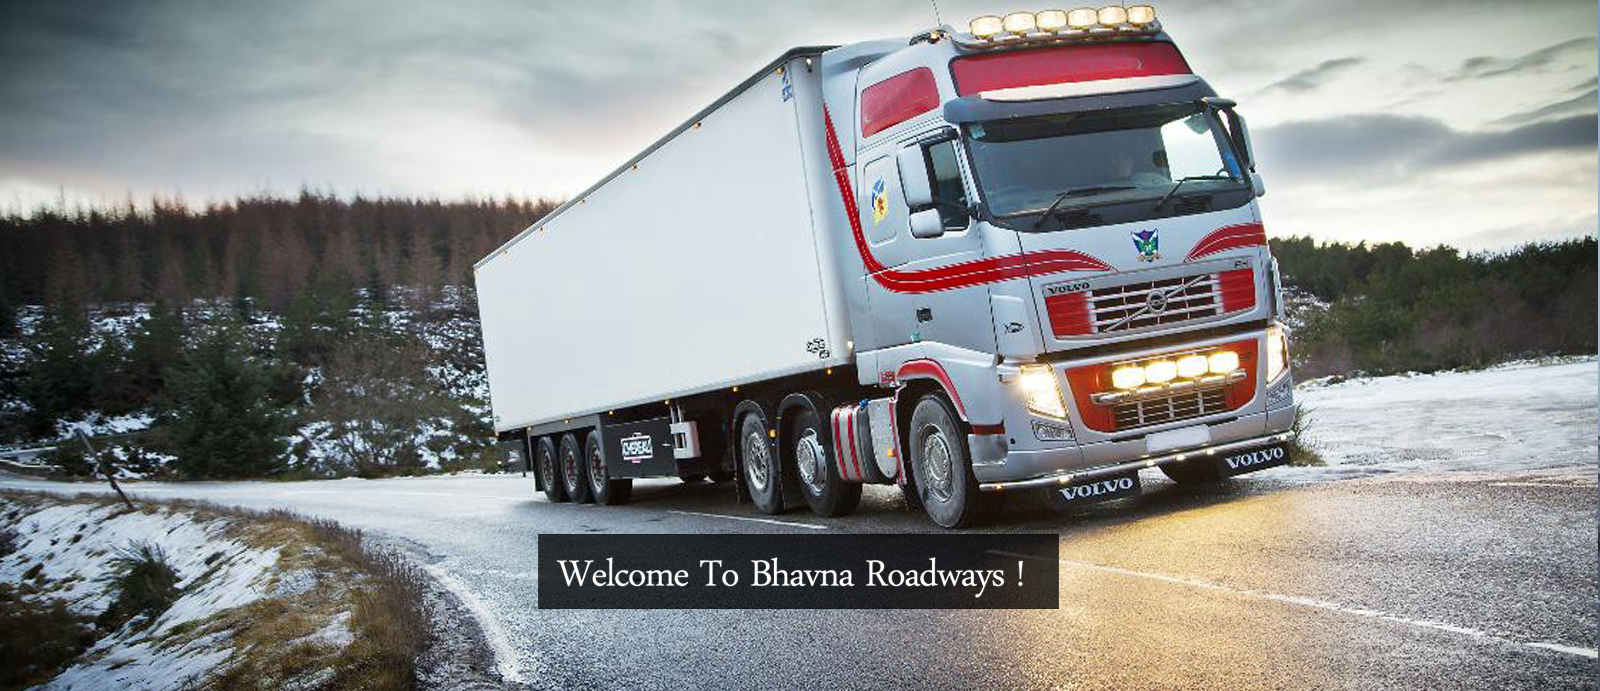 Bhavna Roadways : transport in western india | Transport